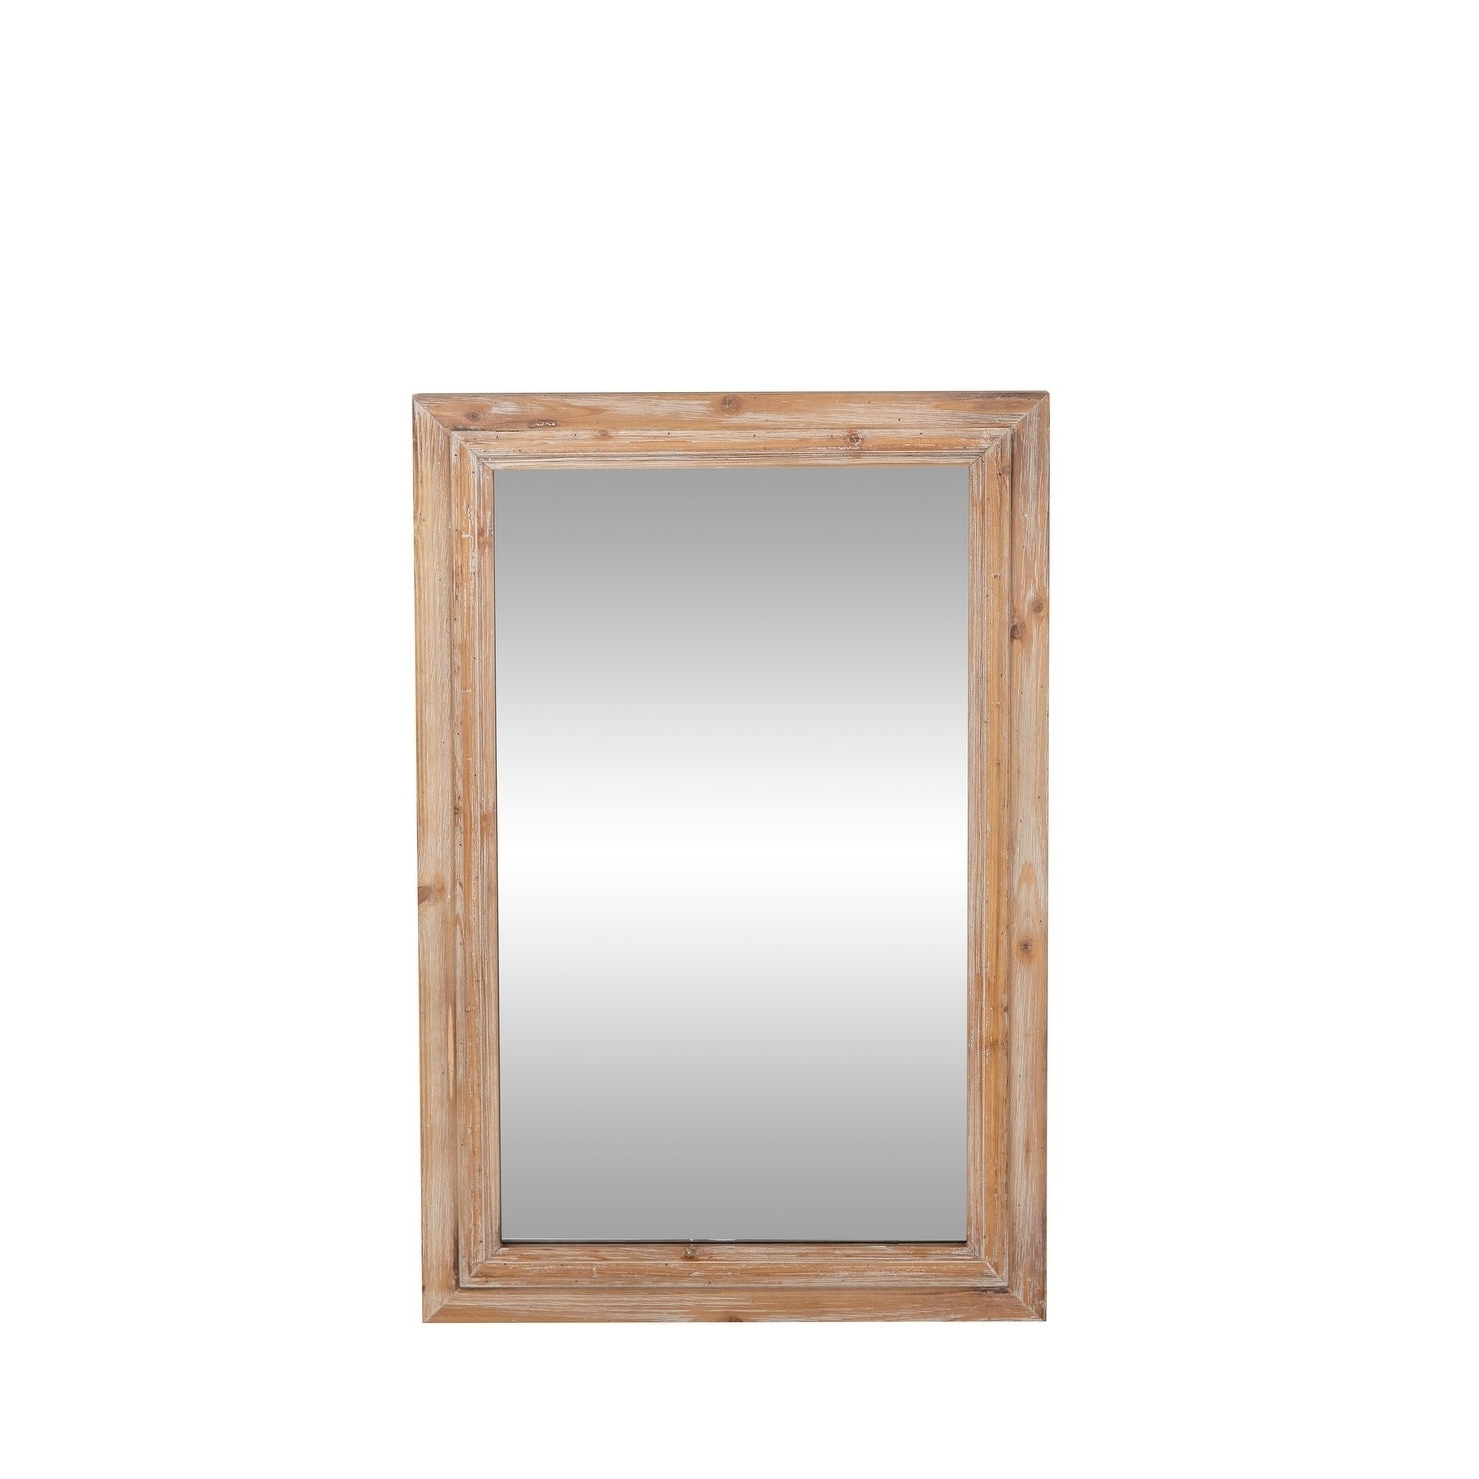 Well Known Rustic 35 X 22 Inch Brown Wood Framed Wall Mirrorstudio 350 Within Wood Framed Wall Mirrors (View 10 of 20)